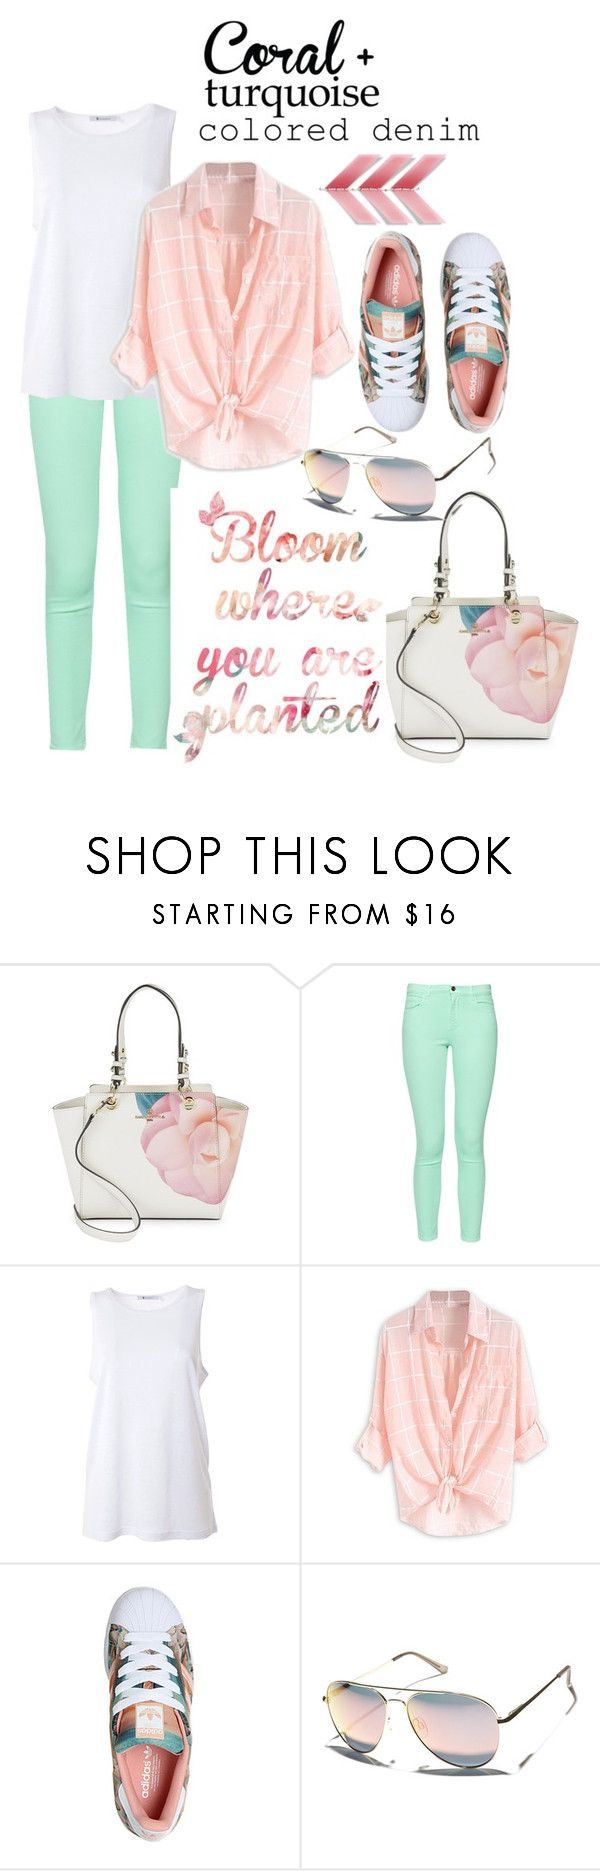 """""""Spring Trend: Colored Denim"""" by mia-christine ❤ liked on Polyvore featuring Karl Lagerfeld, French Connection, T By Alexander Wang, adidas, Le Specs, Spring, contestentry and coloredjeans"""